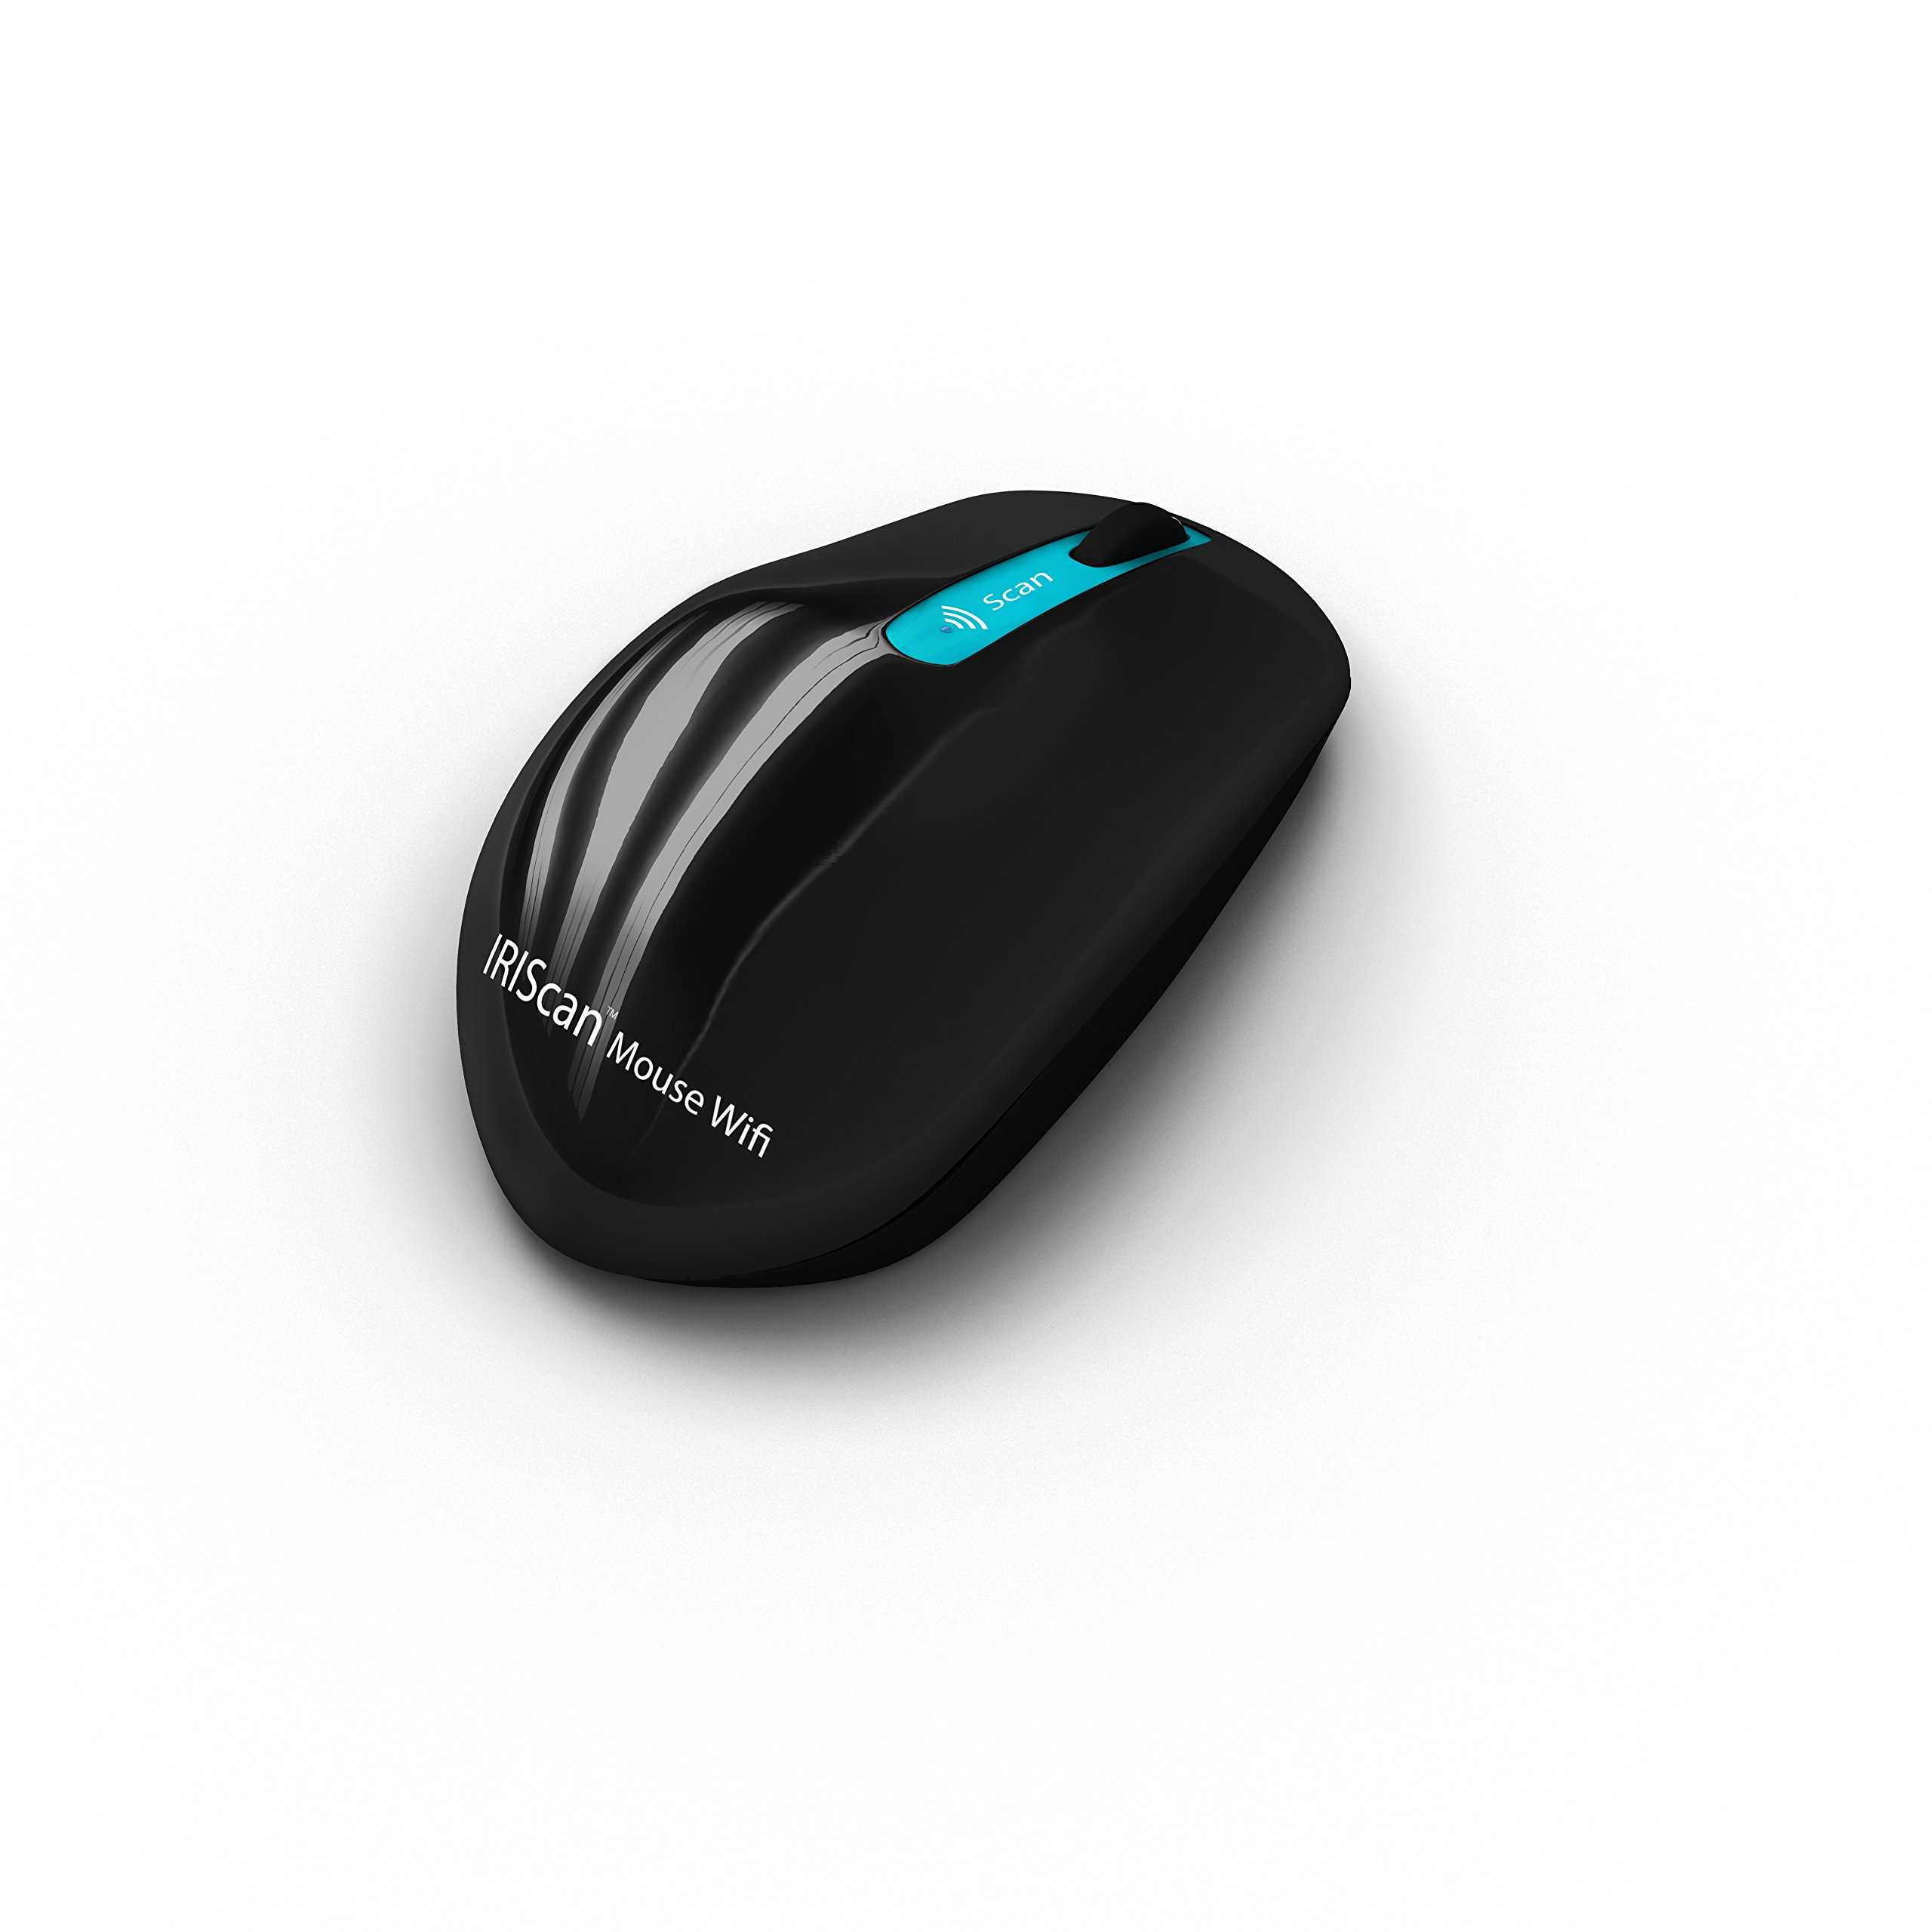 IRISCan Mouse WiFi Wireless Portable Mobile Document Image Handheld Mouse and Color Scanner